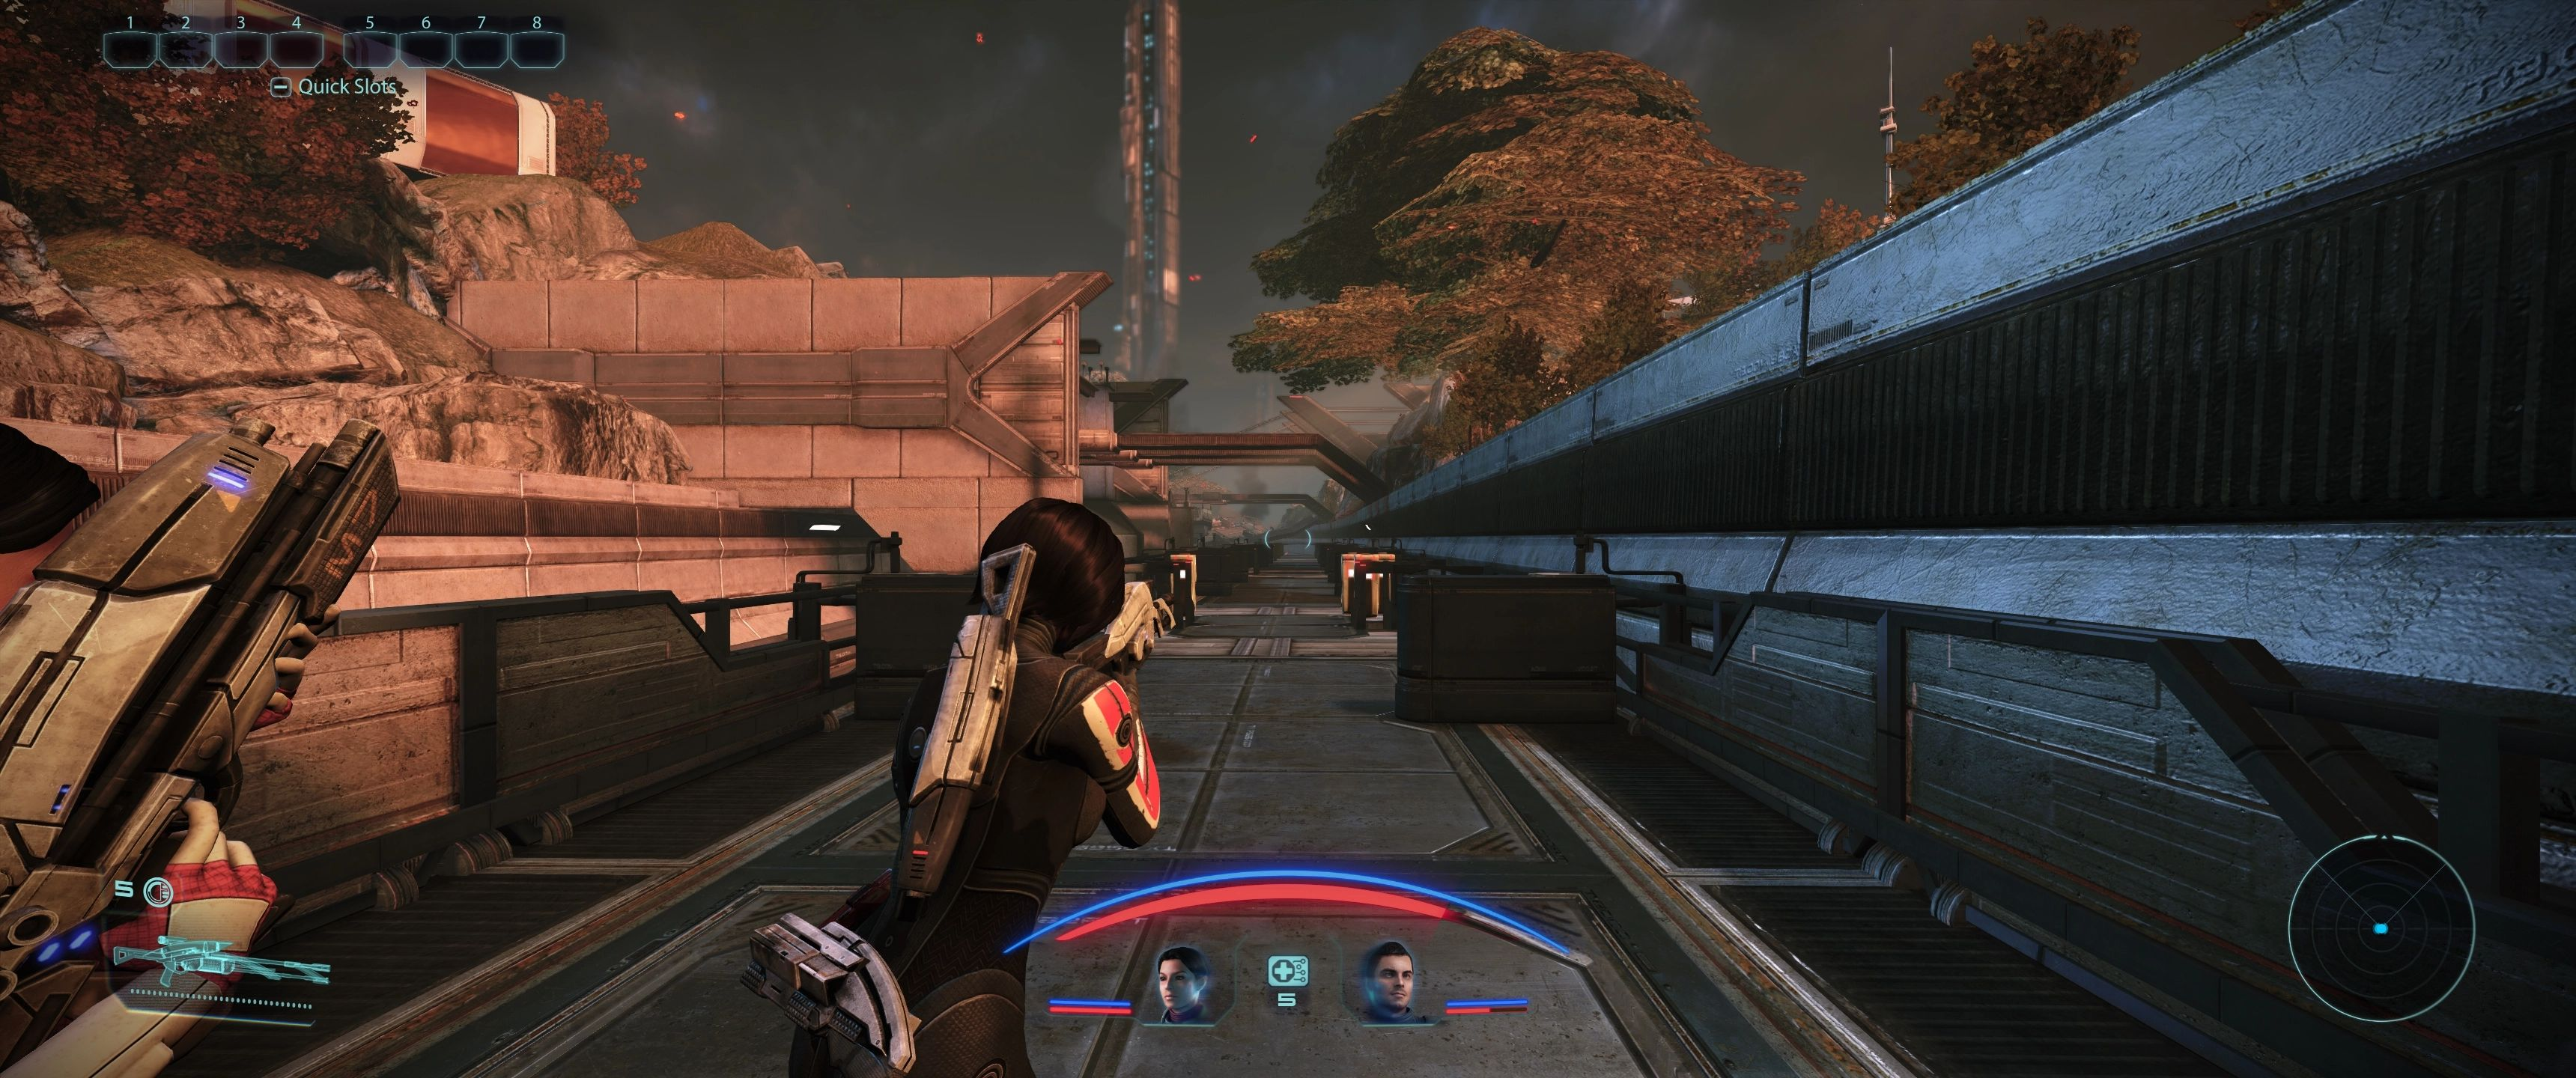 There's an FOV fix for Mass Effect Legendary Edition already